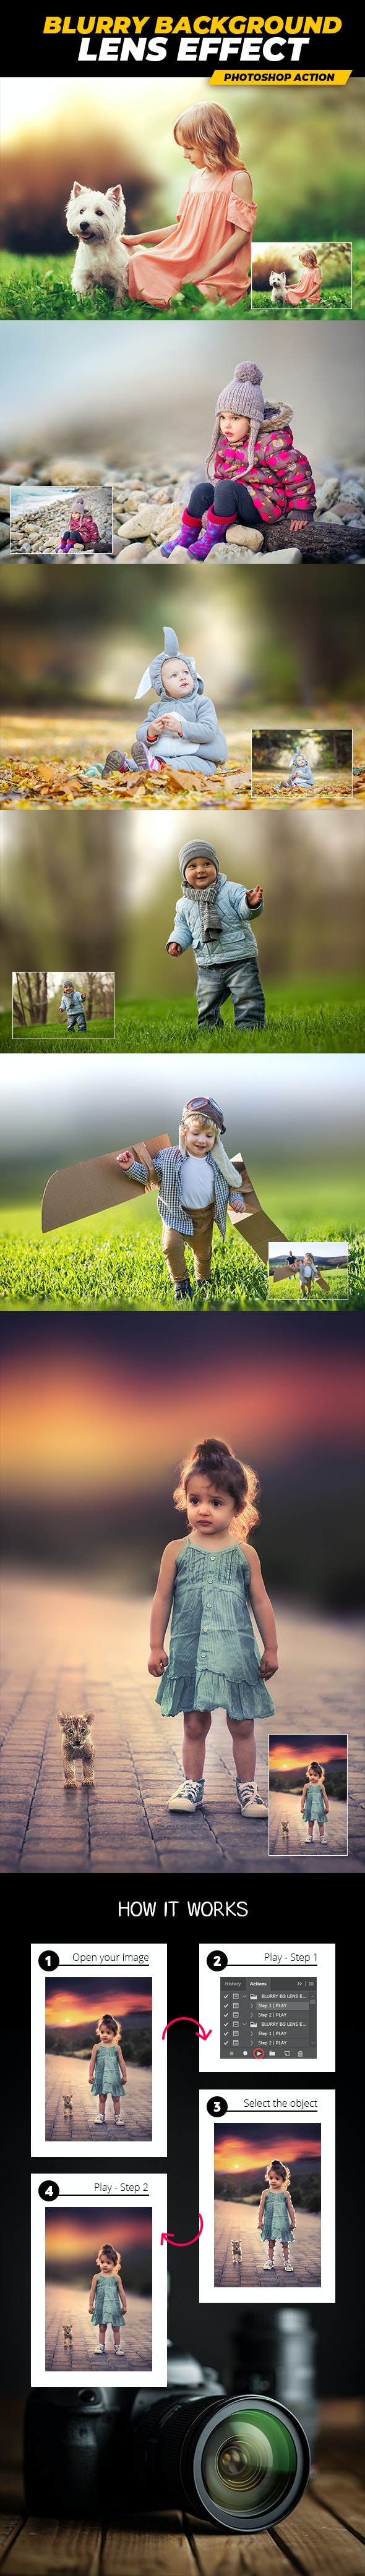 Blurry Background Lens Effect - Photoshop Action - Photo Effects Actions